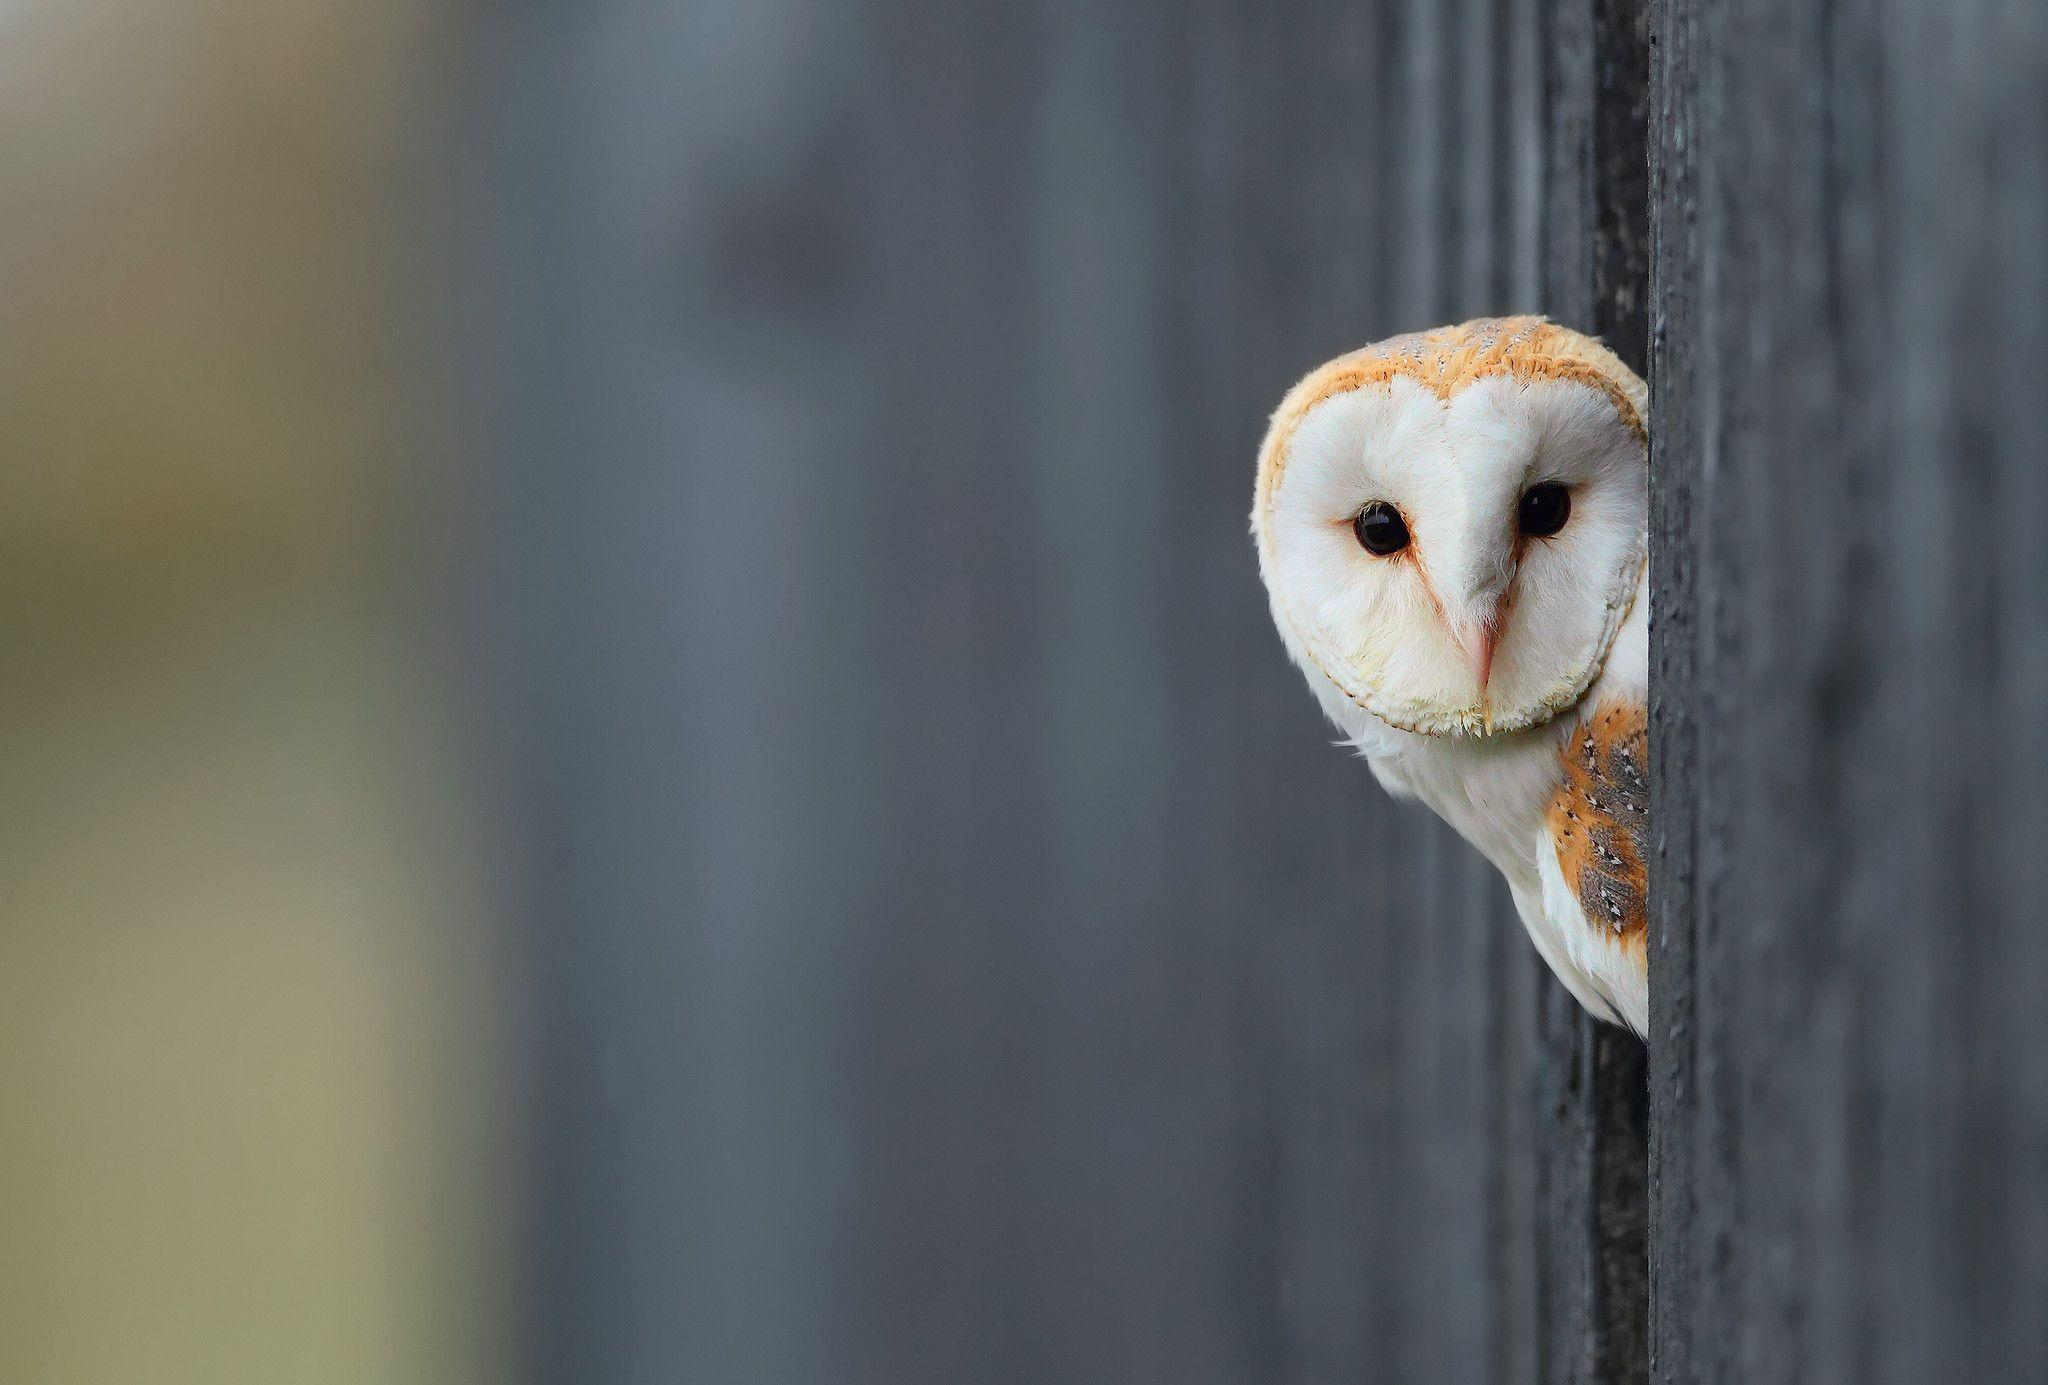 White Owl Wallpapers - Wallpaper Cave